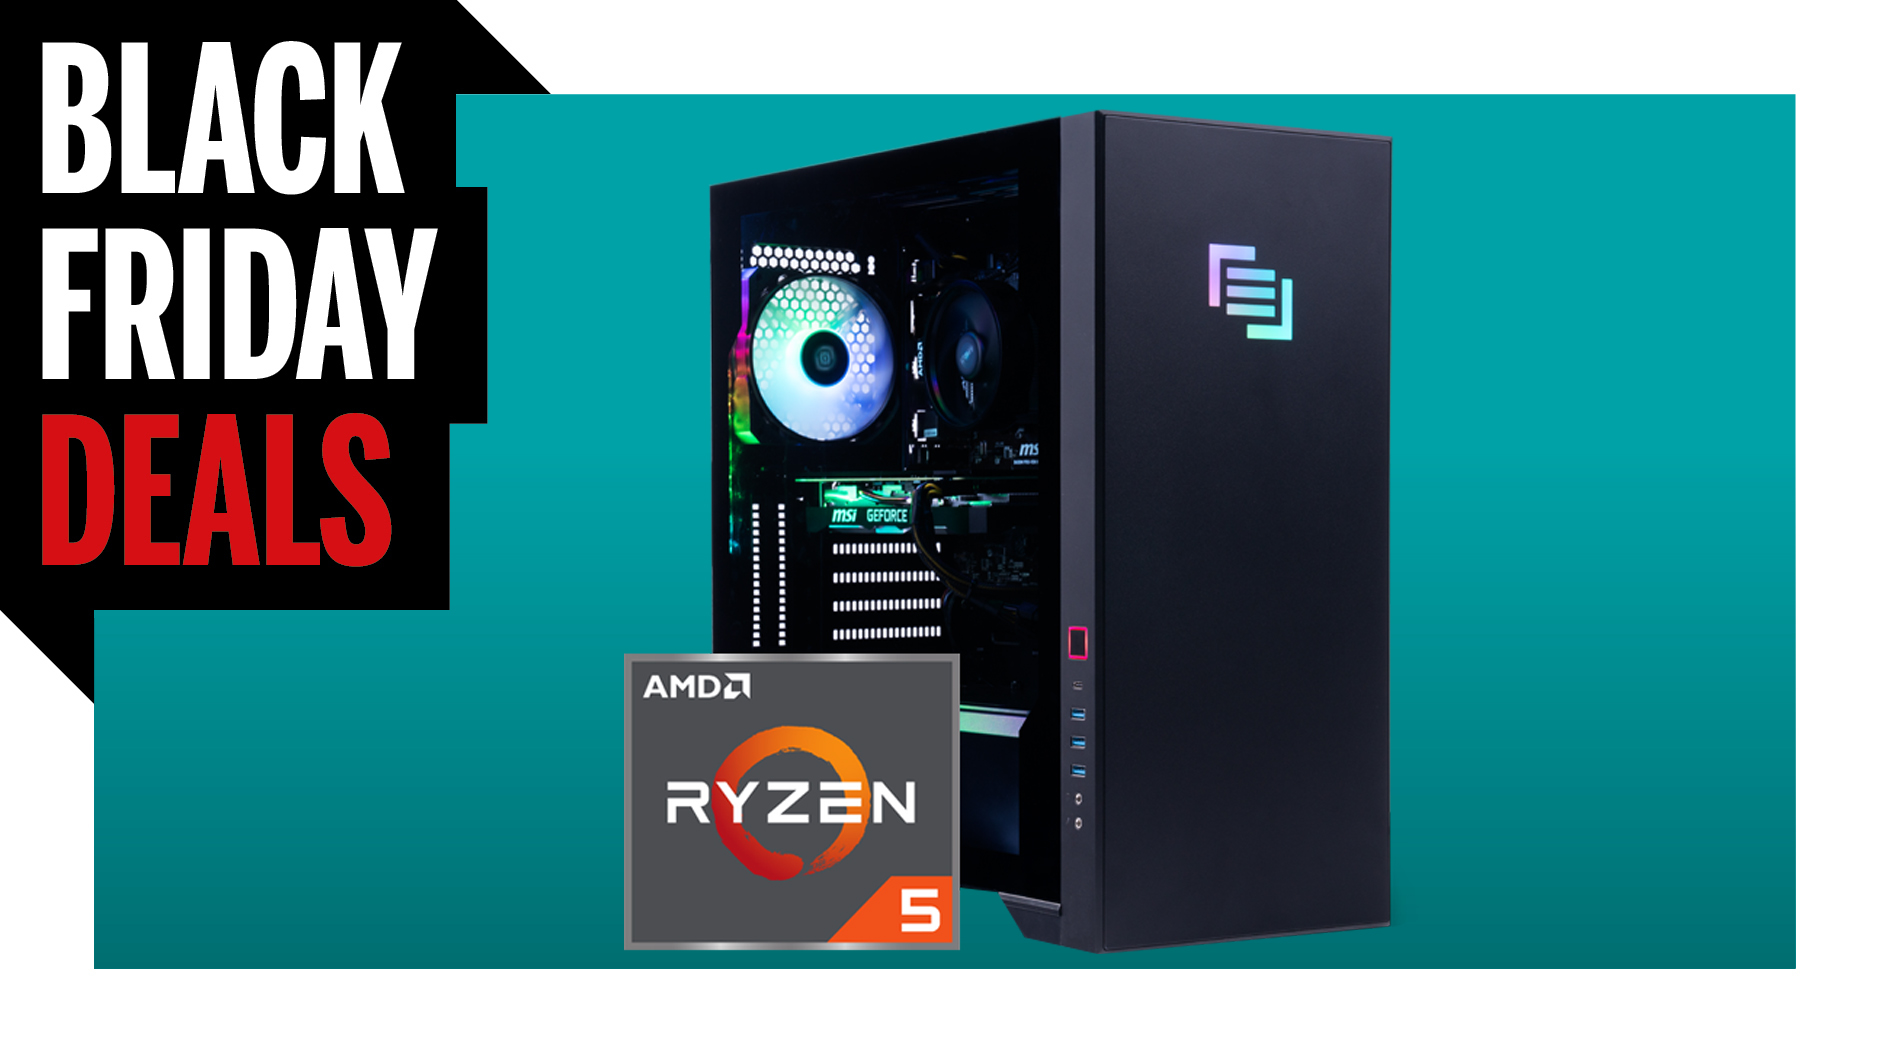 There's $300 off this Black Friday gaming PC with an RTX 3070 AND a Ryzen 5600X